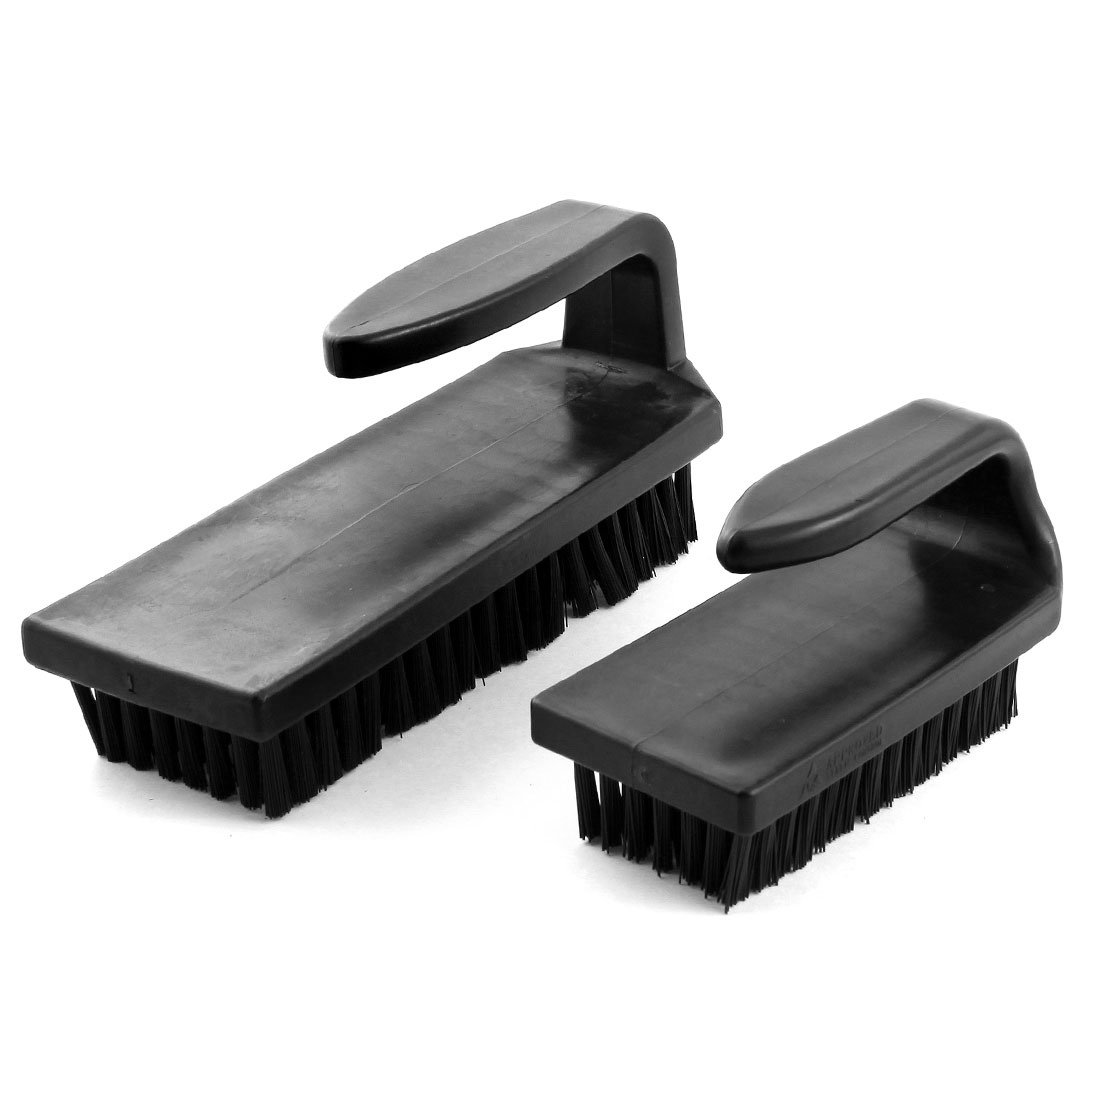 XXL XL Size U Type Black Plastic Handle Static Control Conductive Ground PCB Rework ESD Anti Static Brush Cleaning Tool 2Pcs